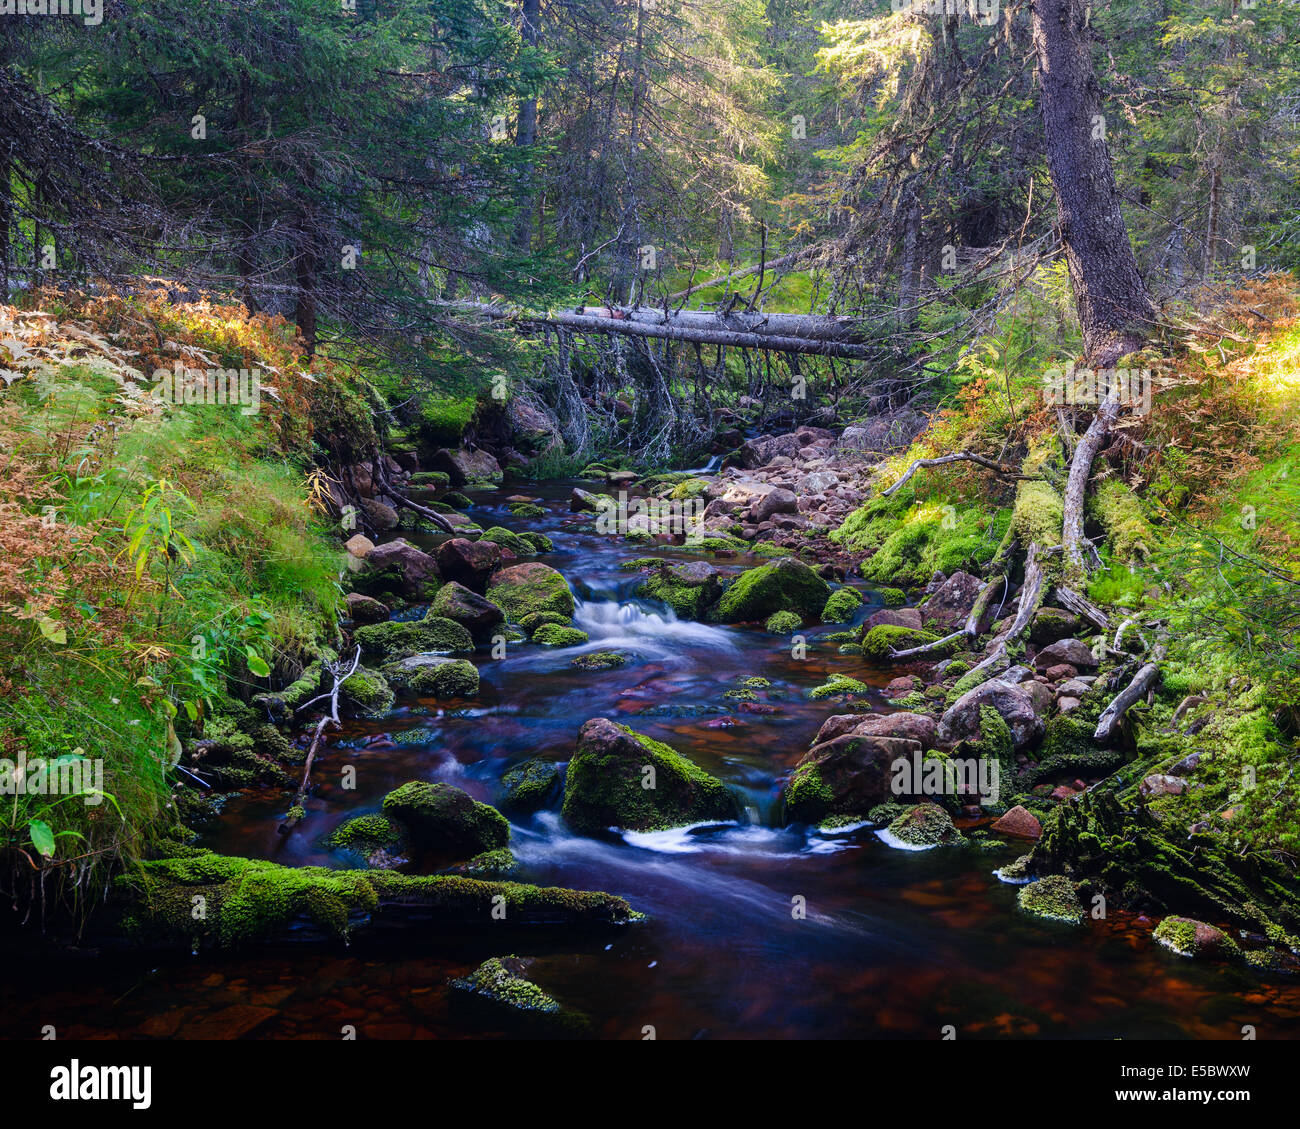 River flowing through forest, Dalarna, Sweden - Stock Image